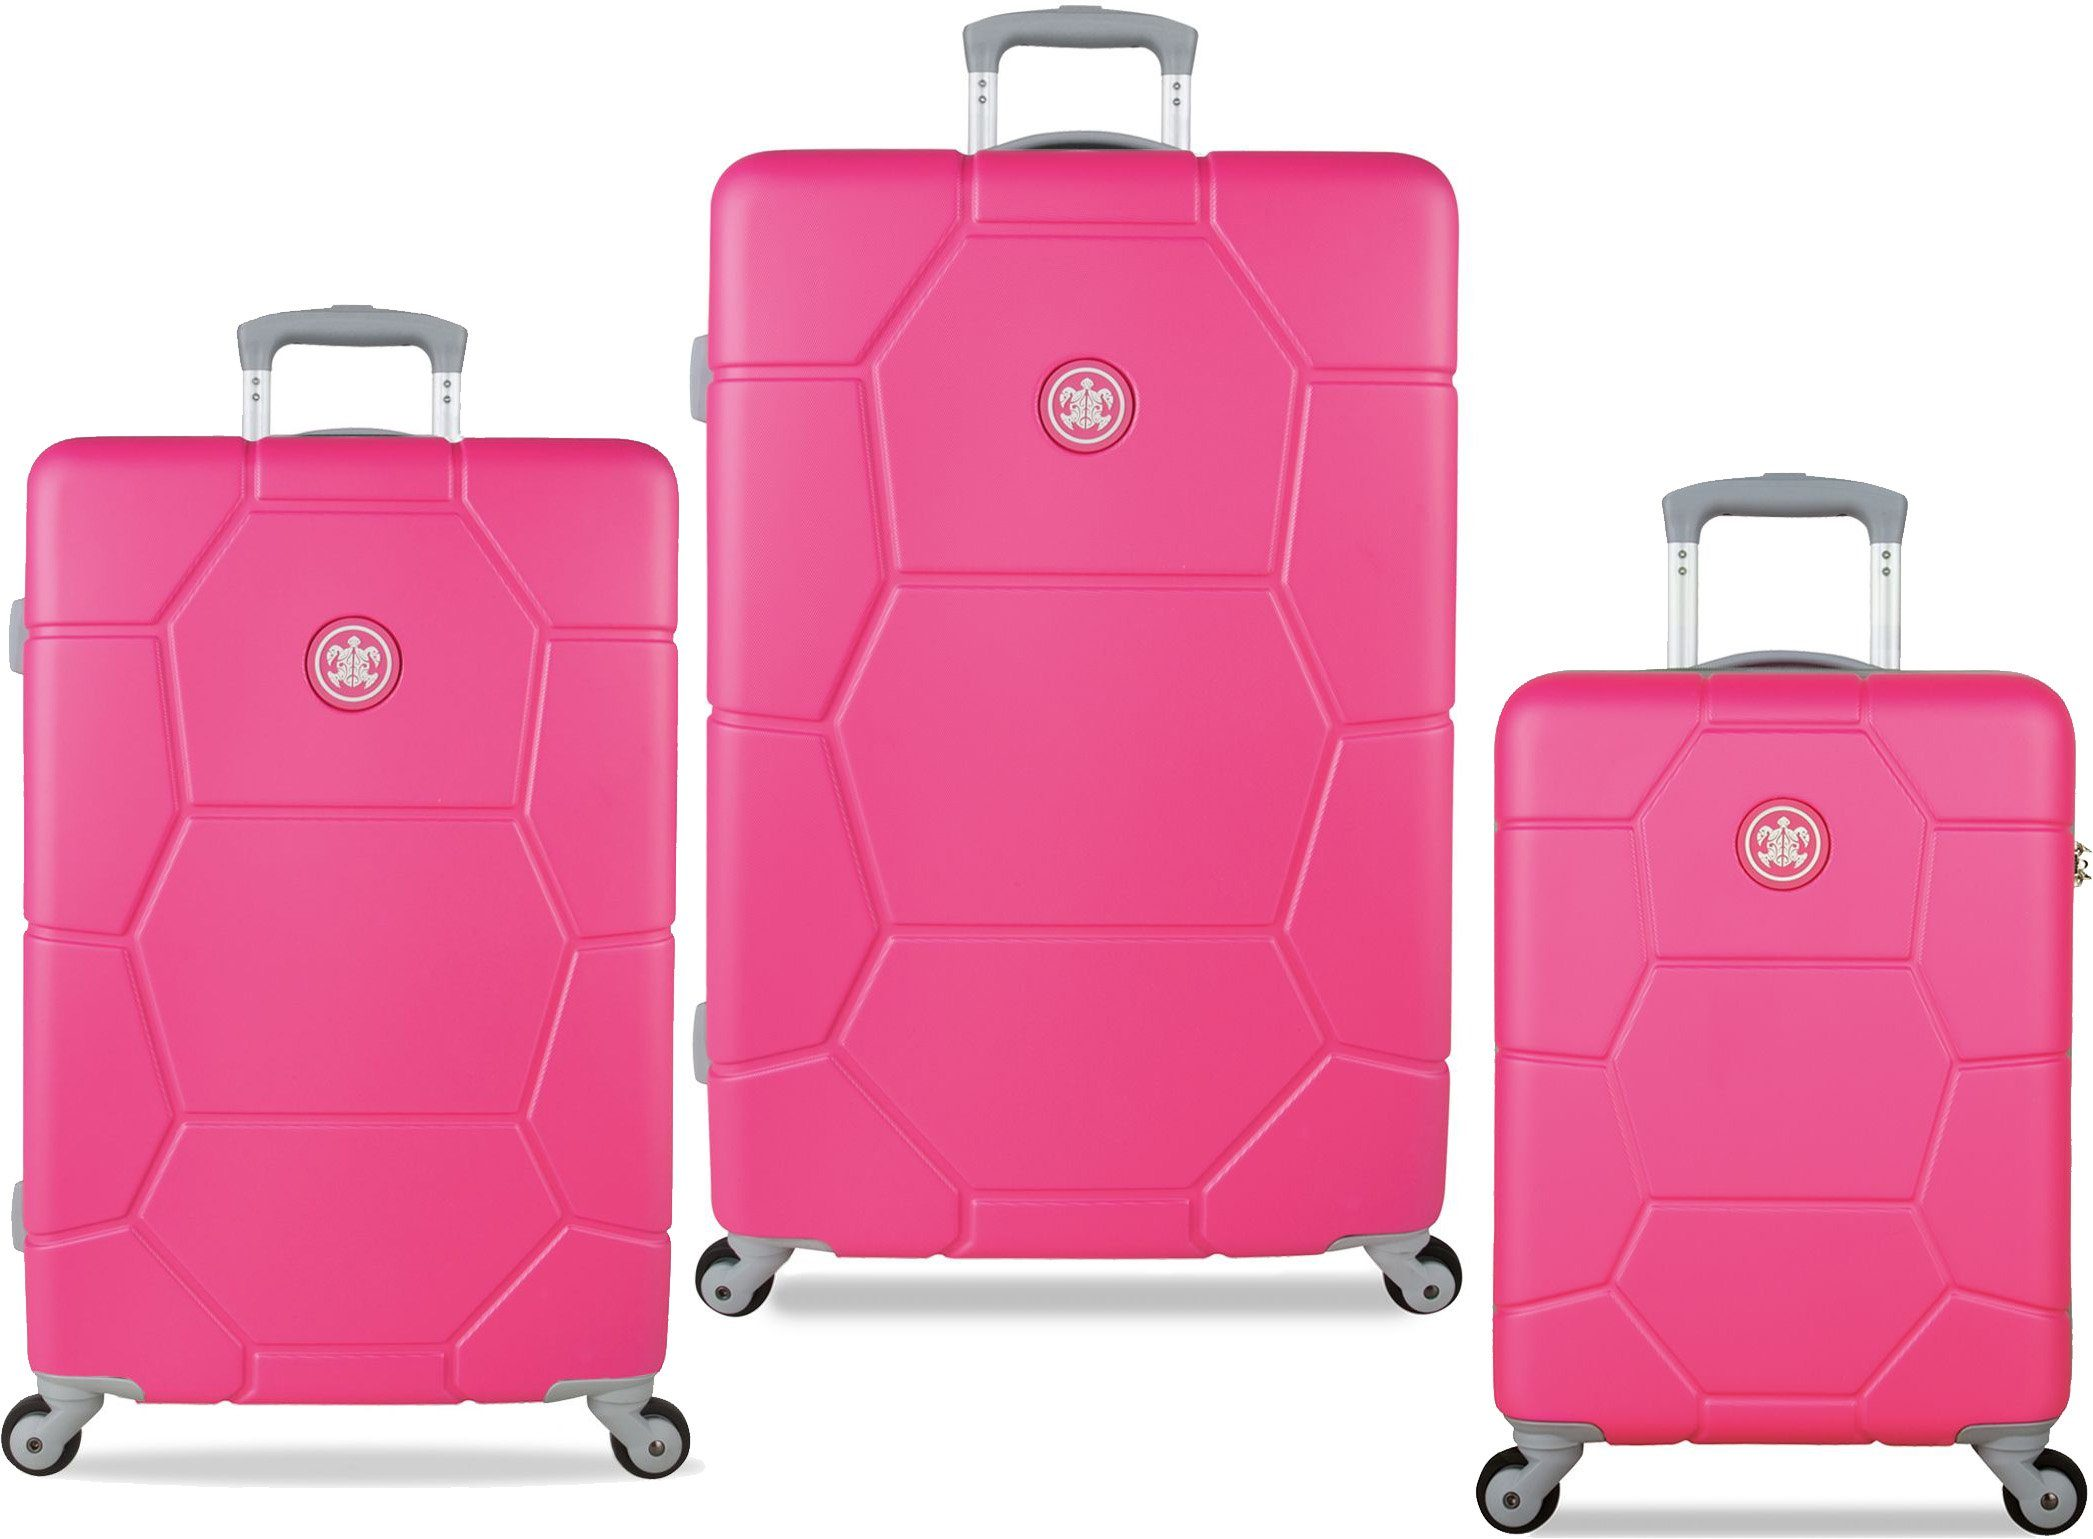 SUITSUIT® Hartschalentrolley Set mit 4 Rollen, 3-tlg., »Caretta Shocking Pink«